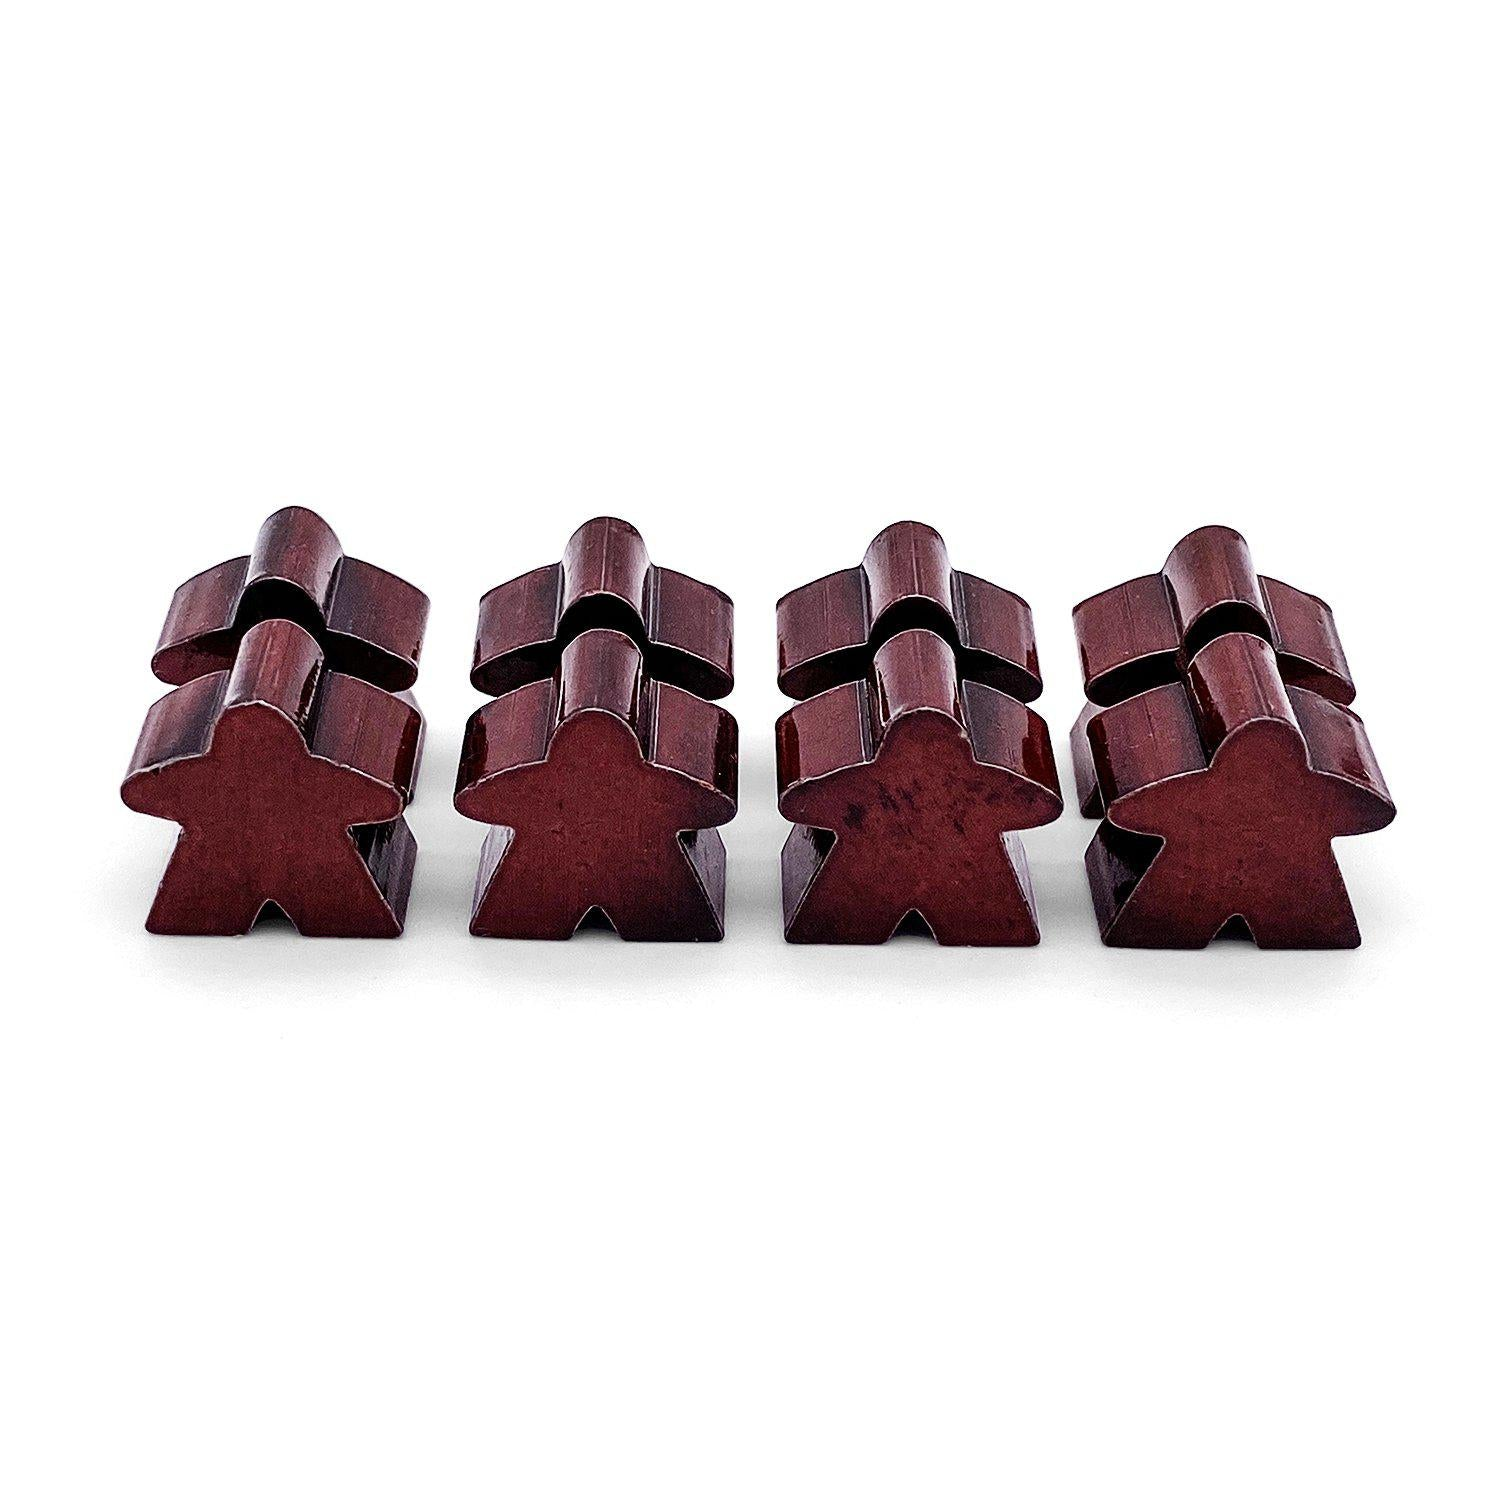 8 Pack of Red Metal Meeples by Norse Foundry